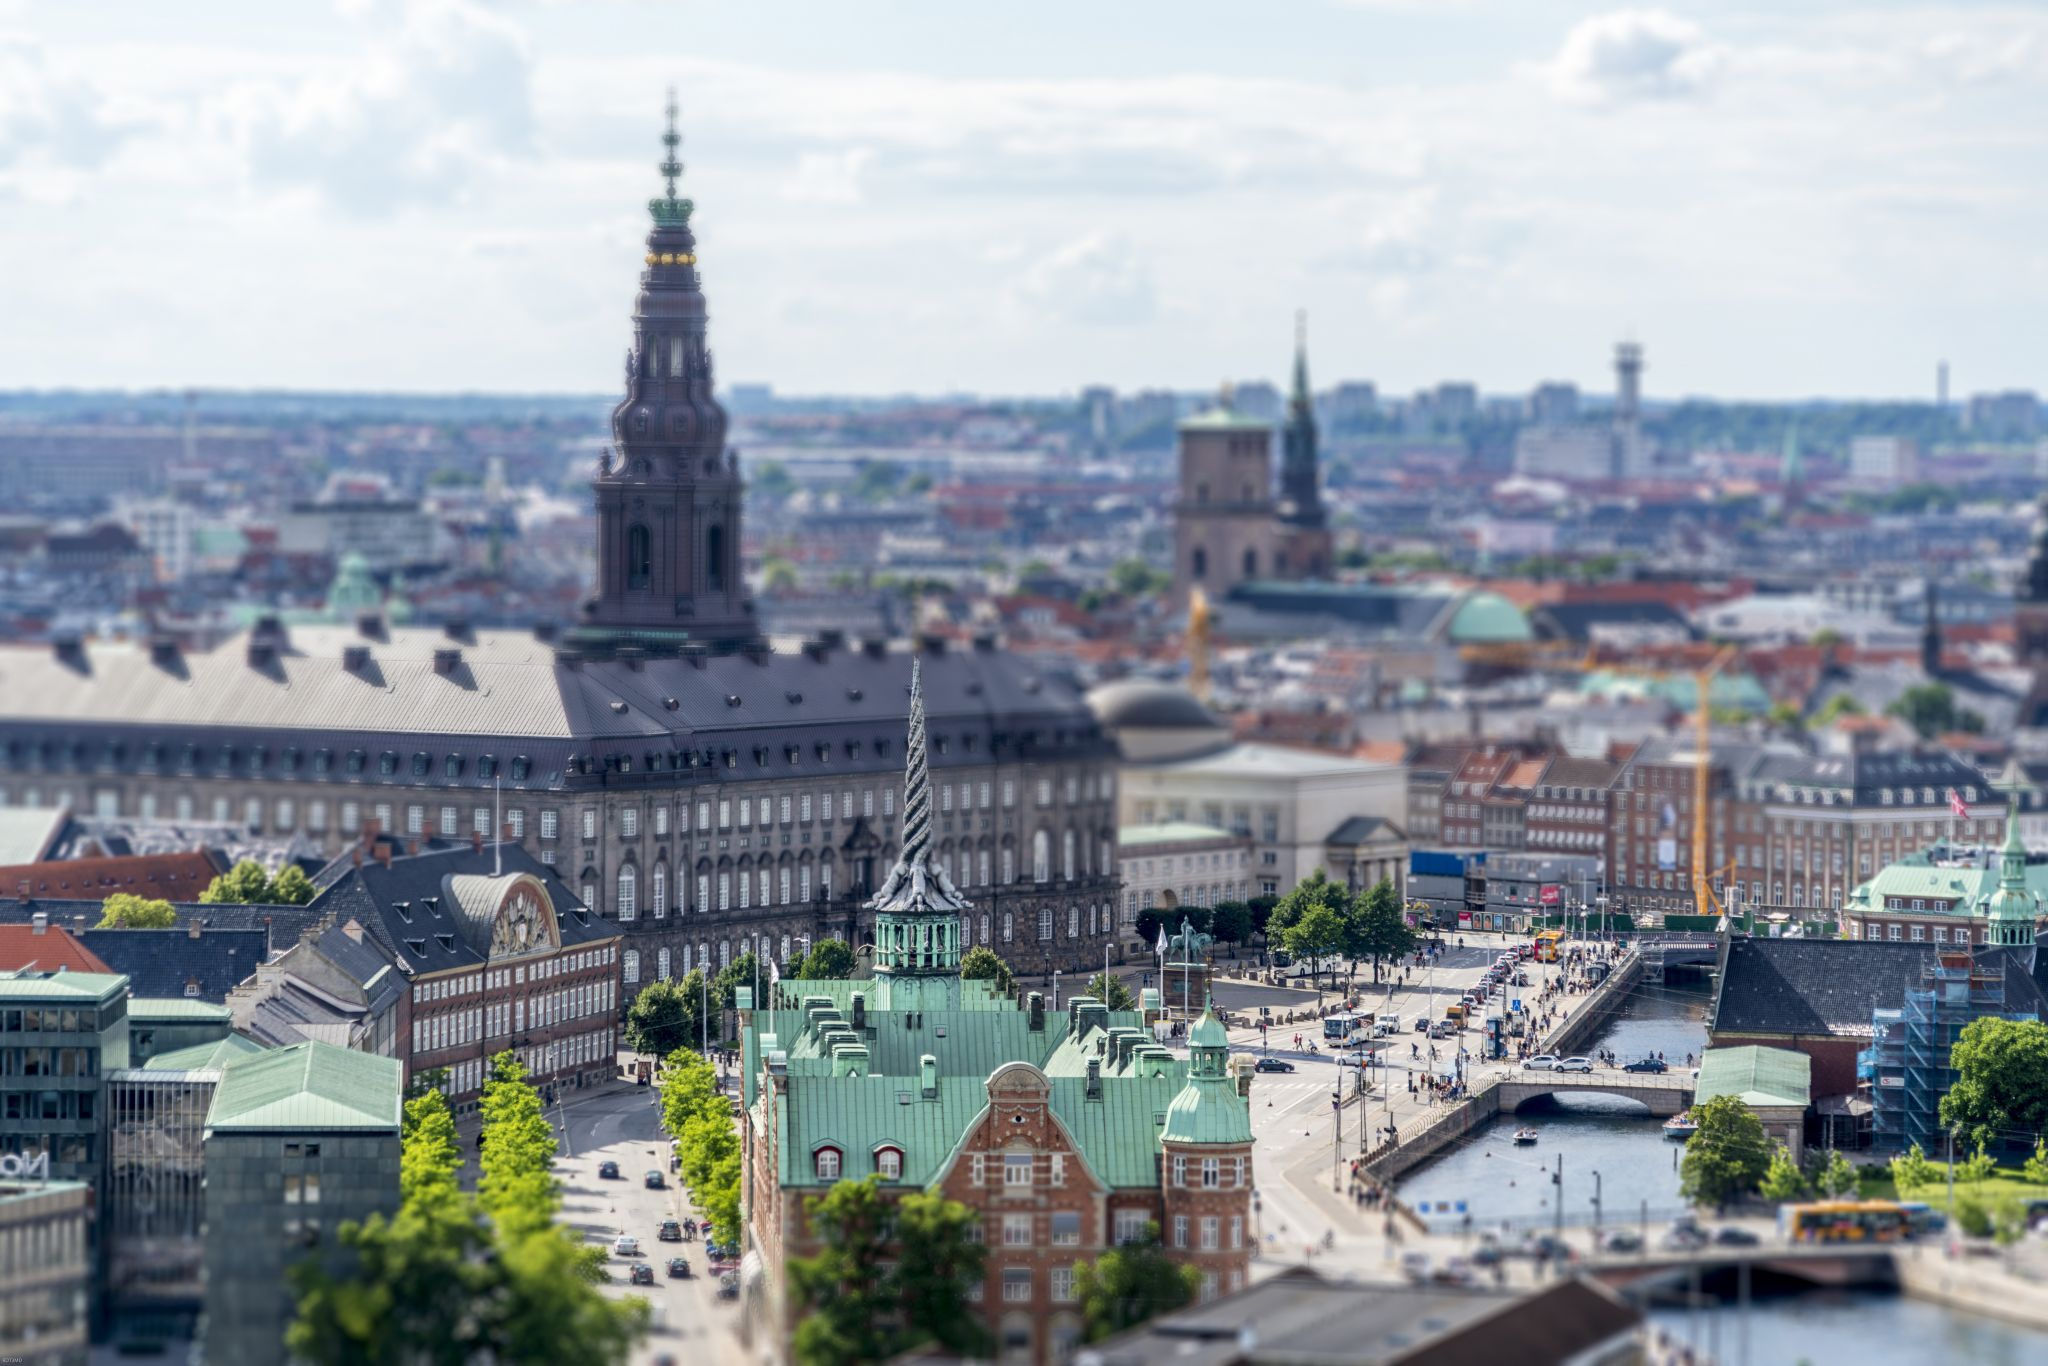 View of Christianborg from Church of Our Savior, Denmark